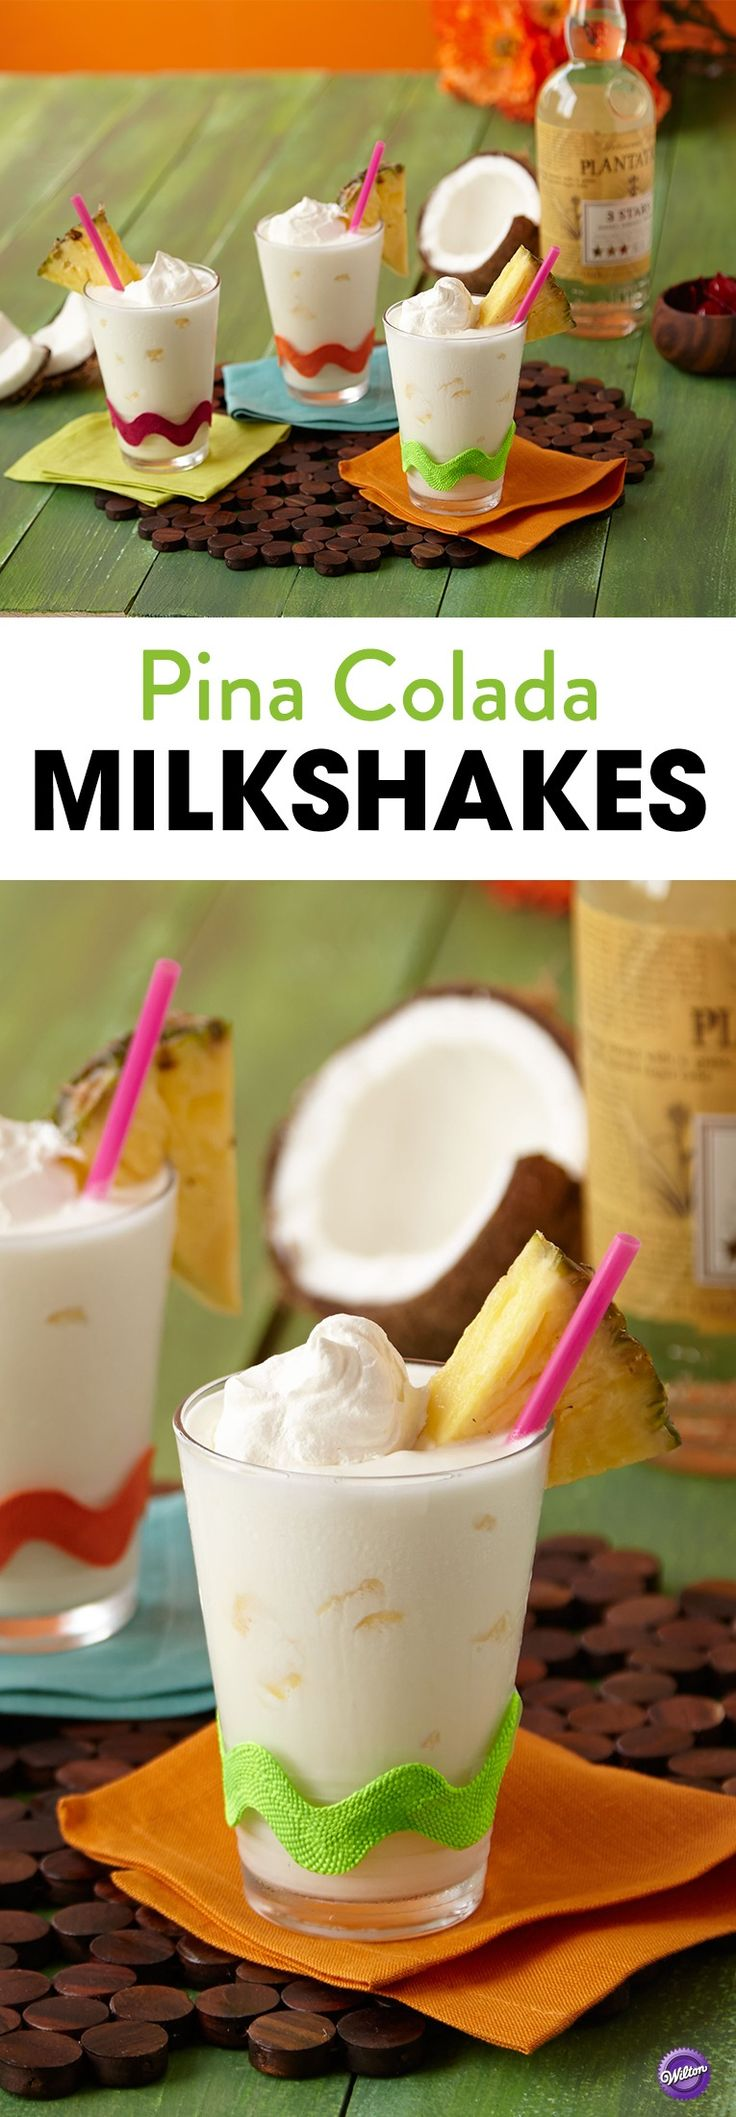 Pina Colada Milkshakes Recipe - Time to rethink this favorite summer drink! This easy to make Pina Colada Milkshake will shake up your summer parties!